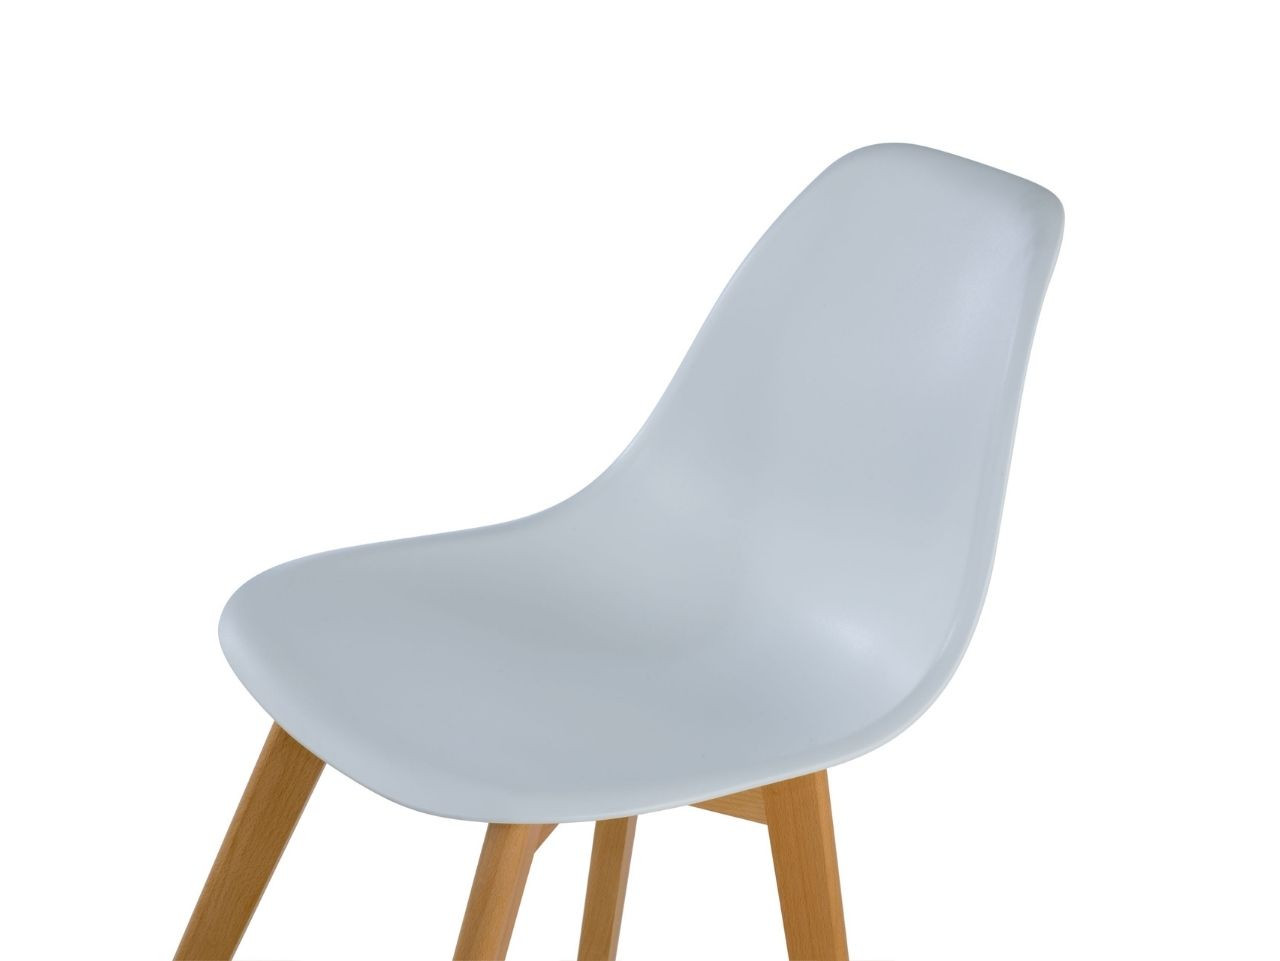 sofa cama chaise longue sistema italiano outside barato y sofas dicoro pequeno etna